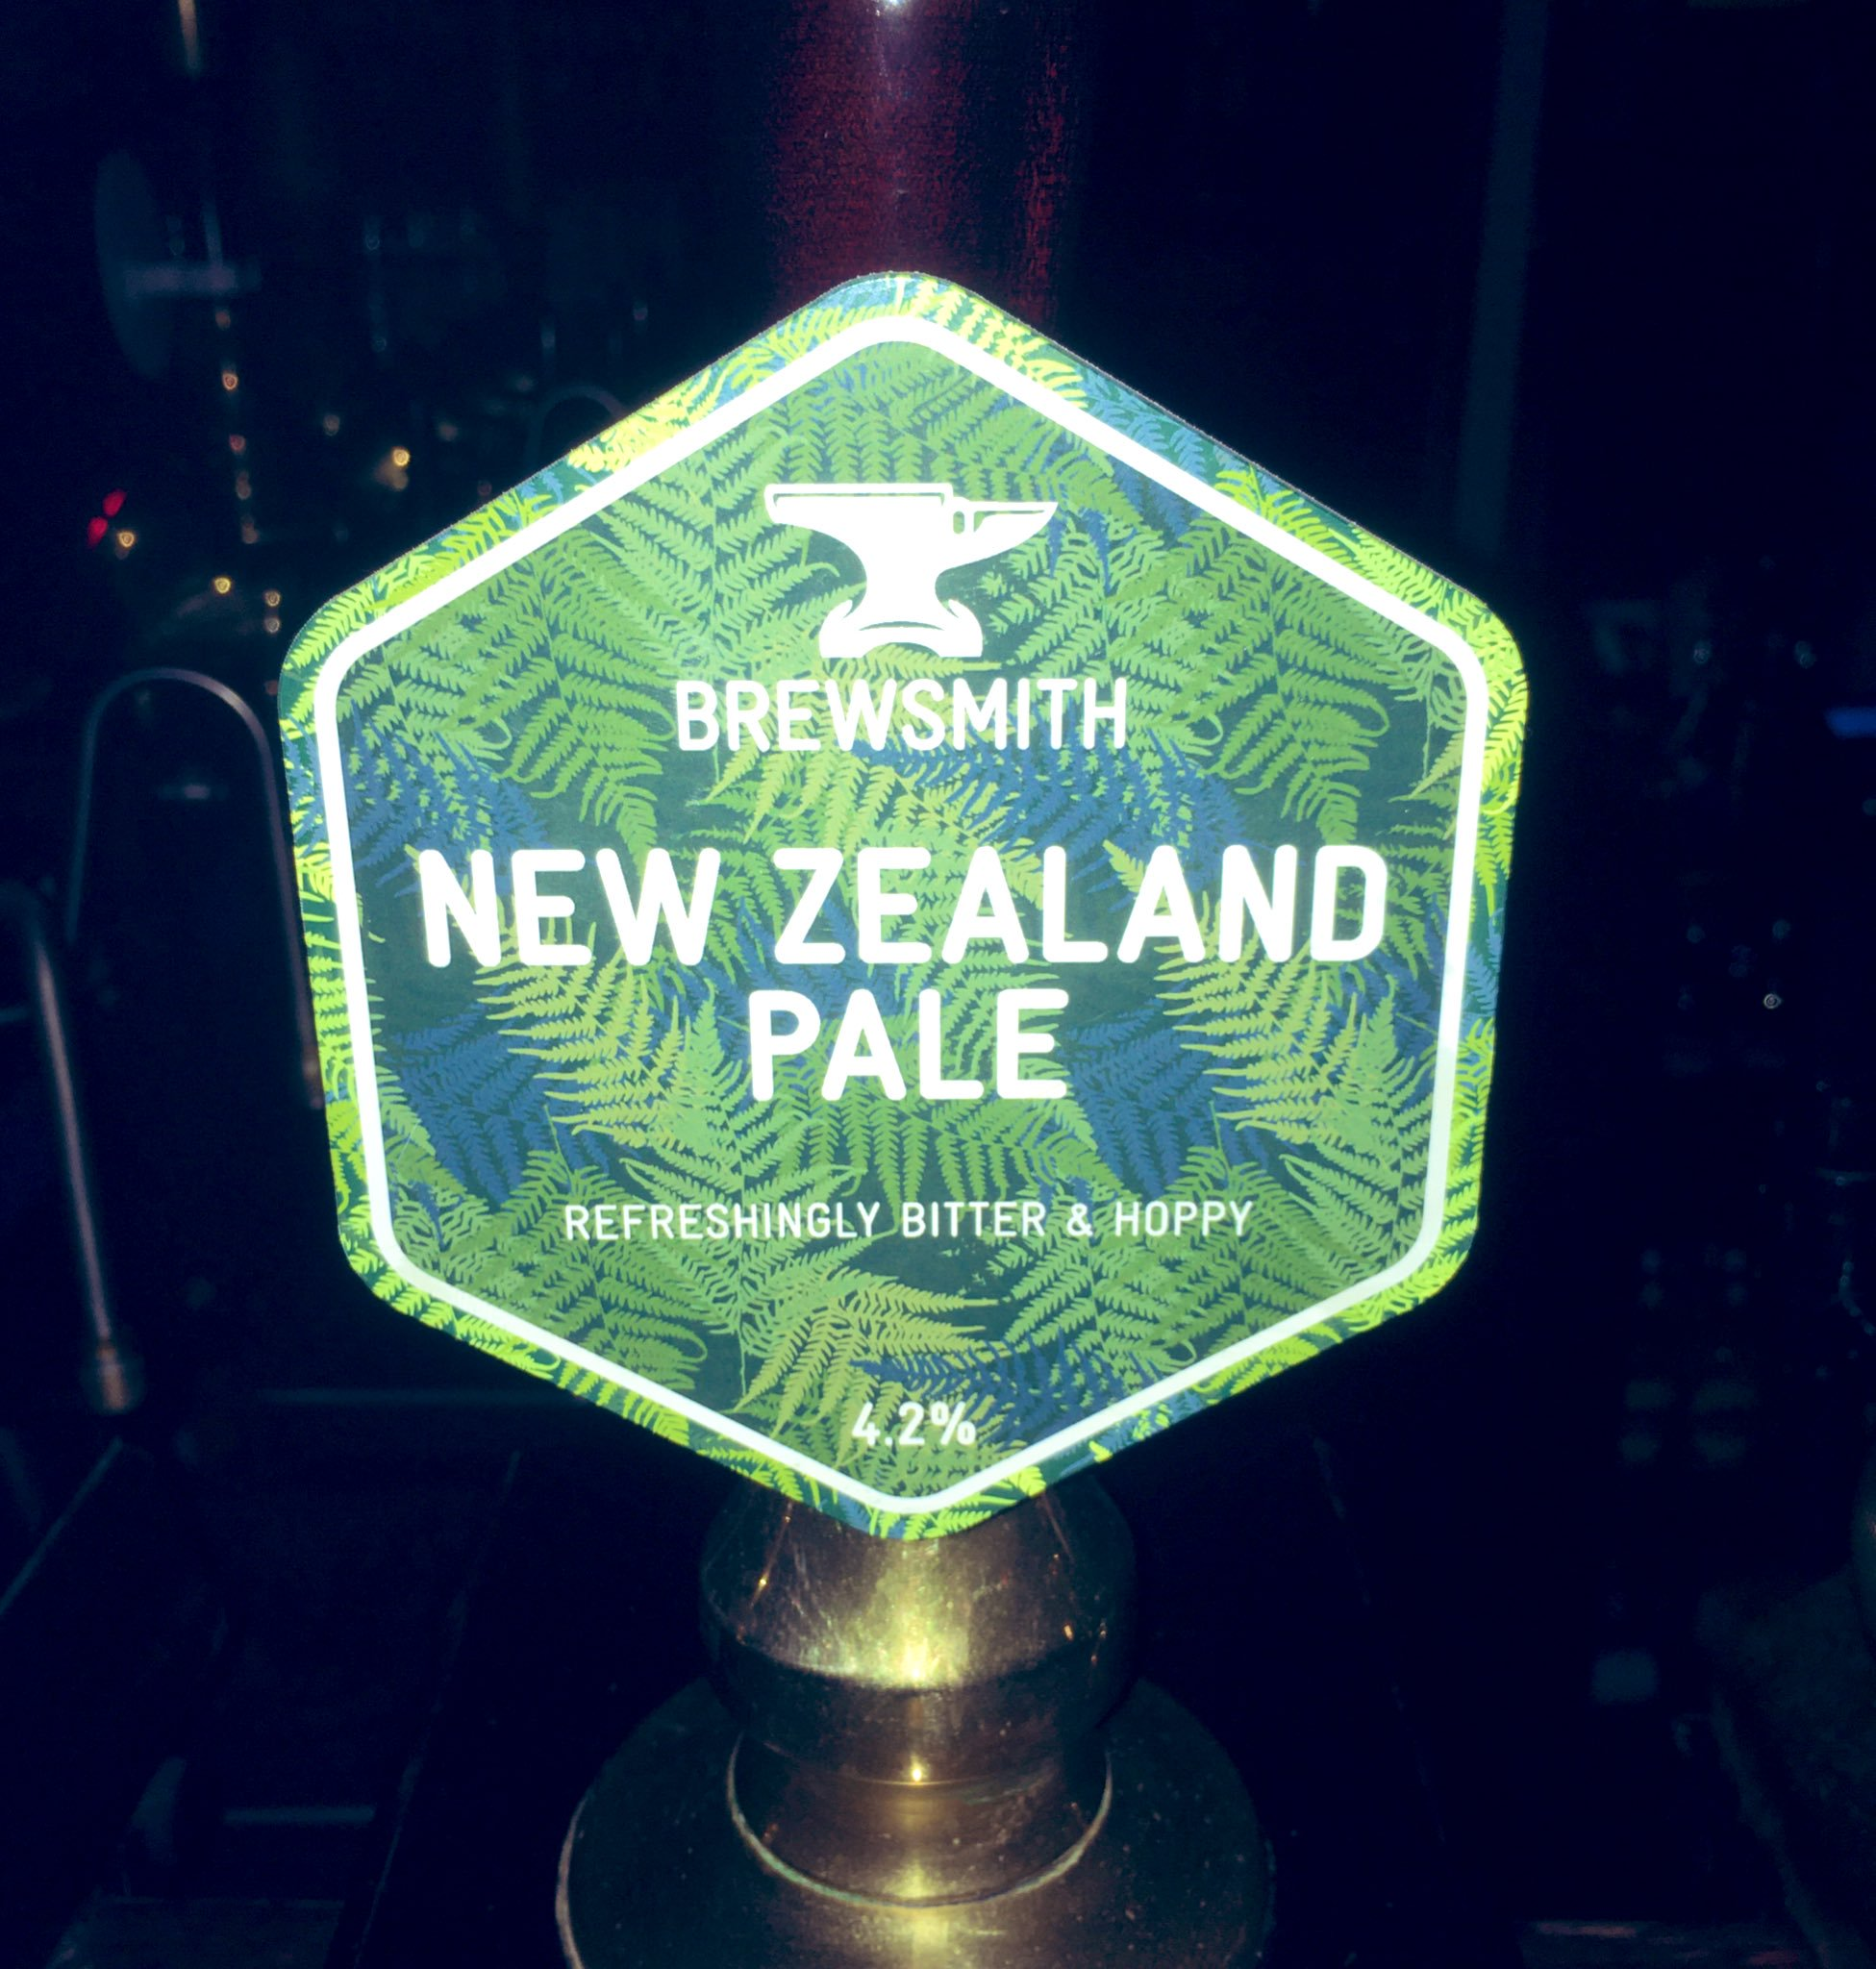 340: New Zealand Pale